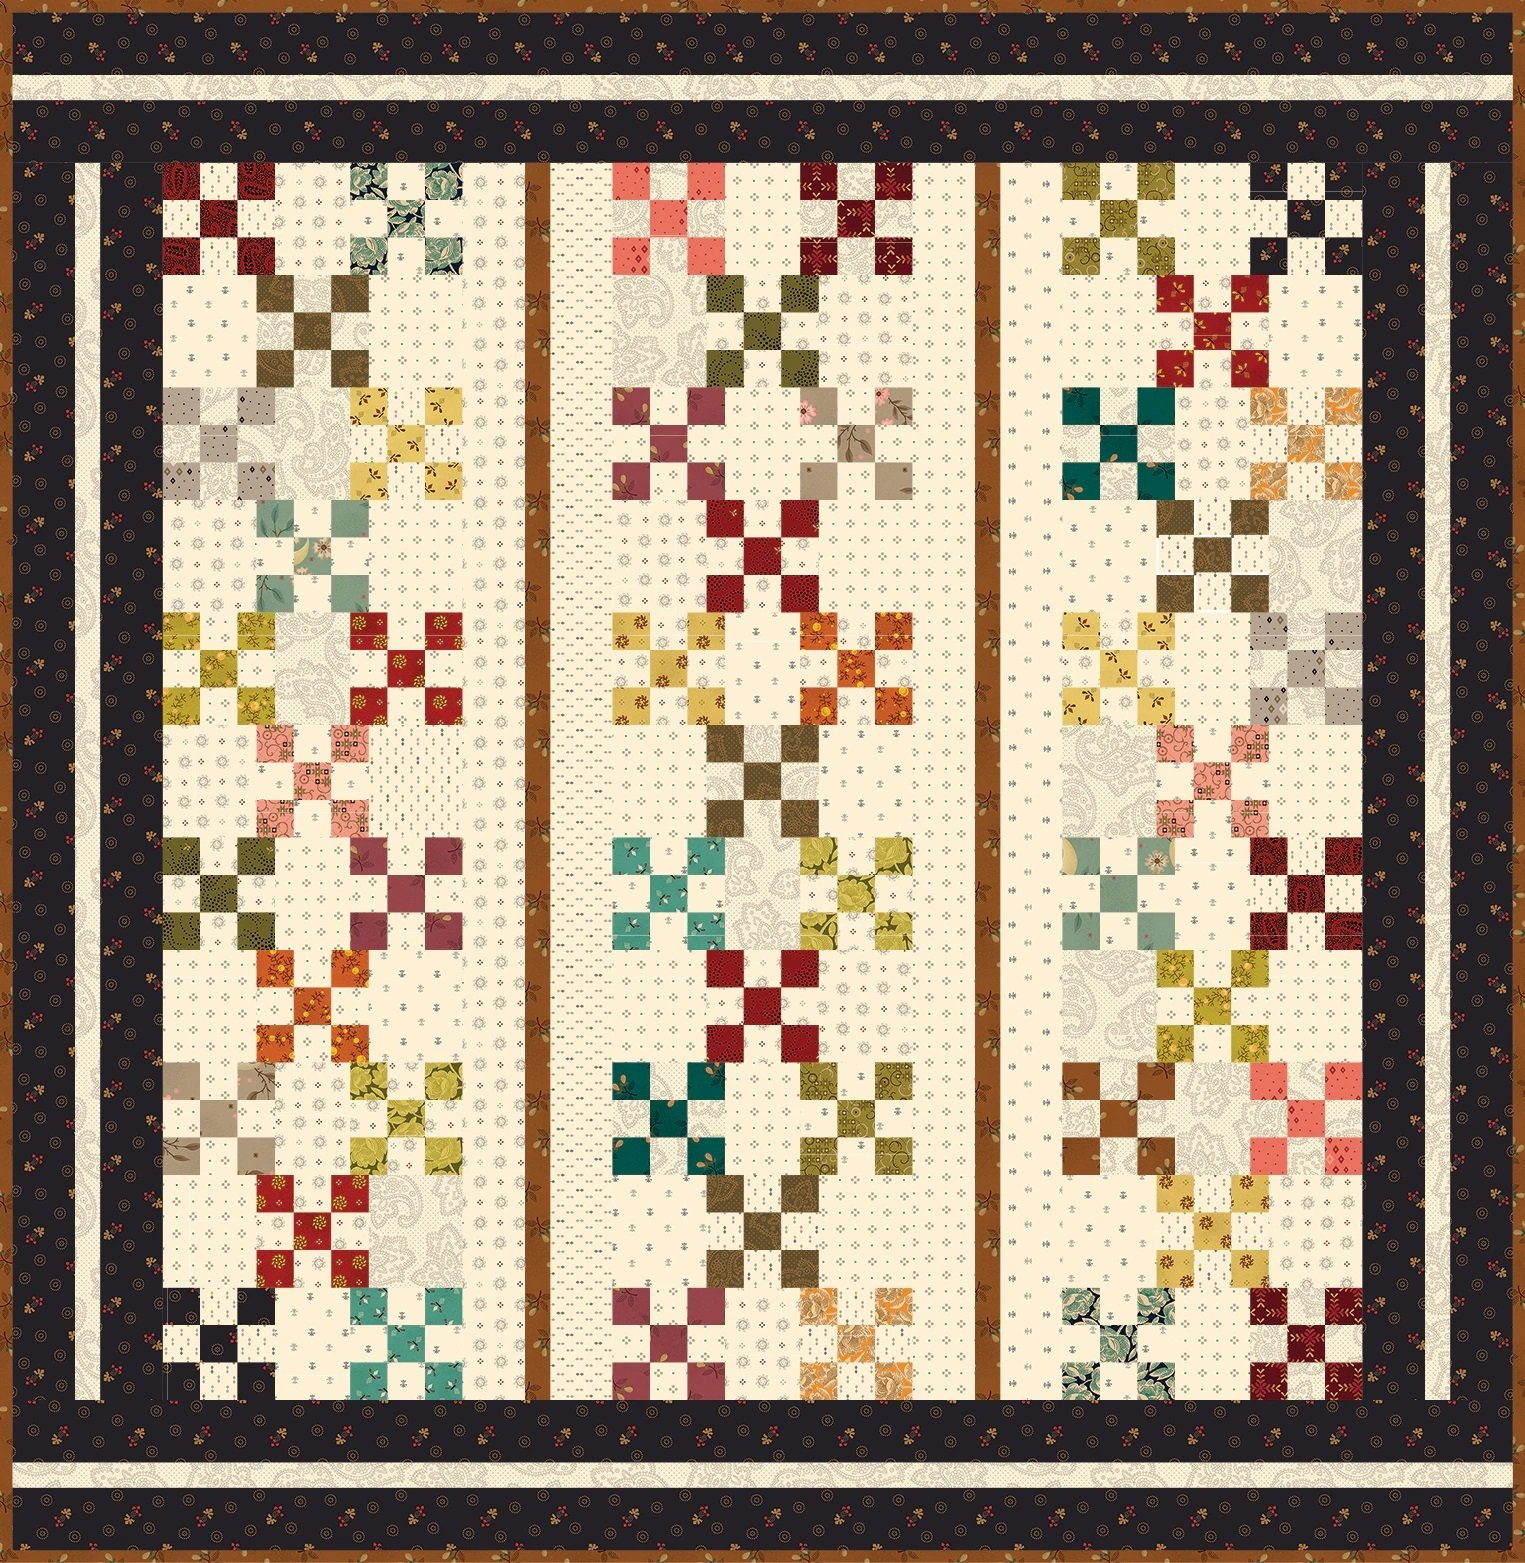 Simple Whatnots 10 - Party Of Nine Quilt Kit - 30 1/2 x 31 1/4